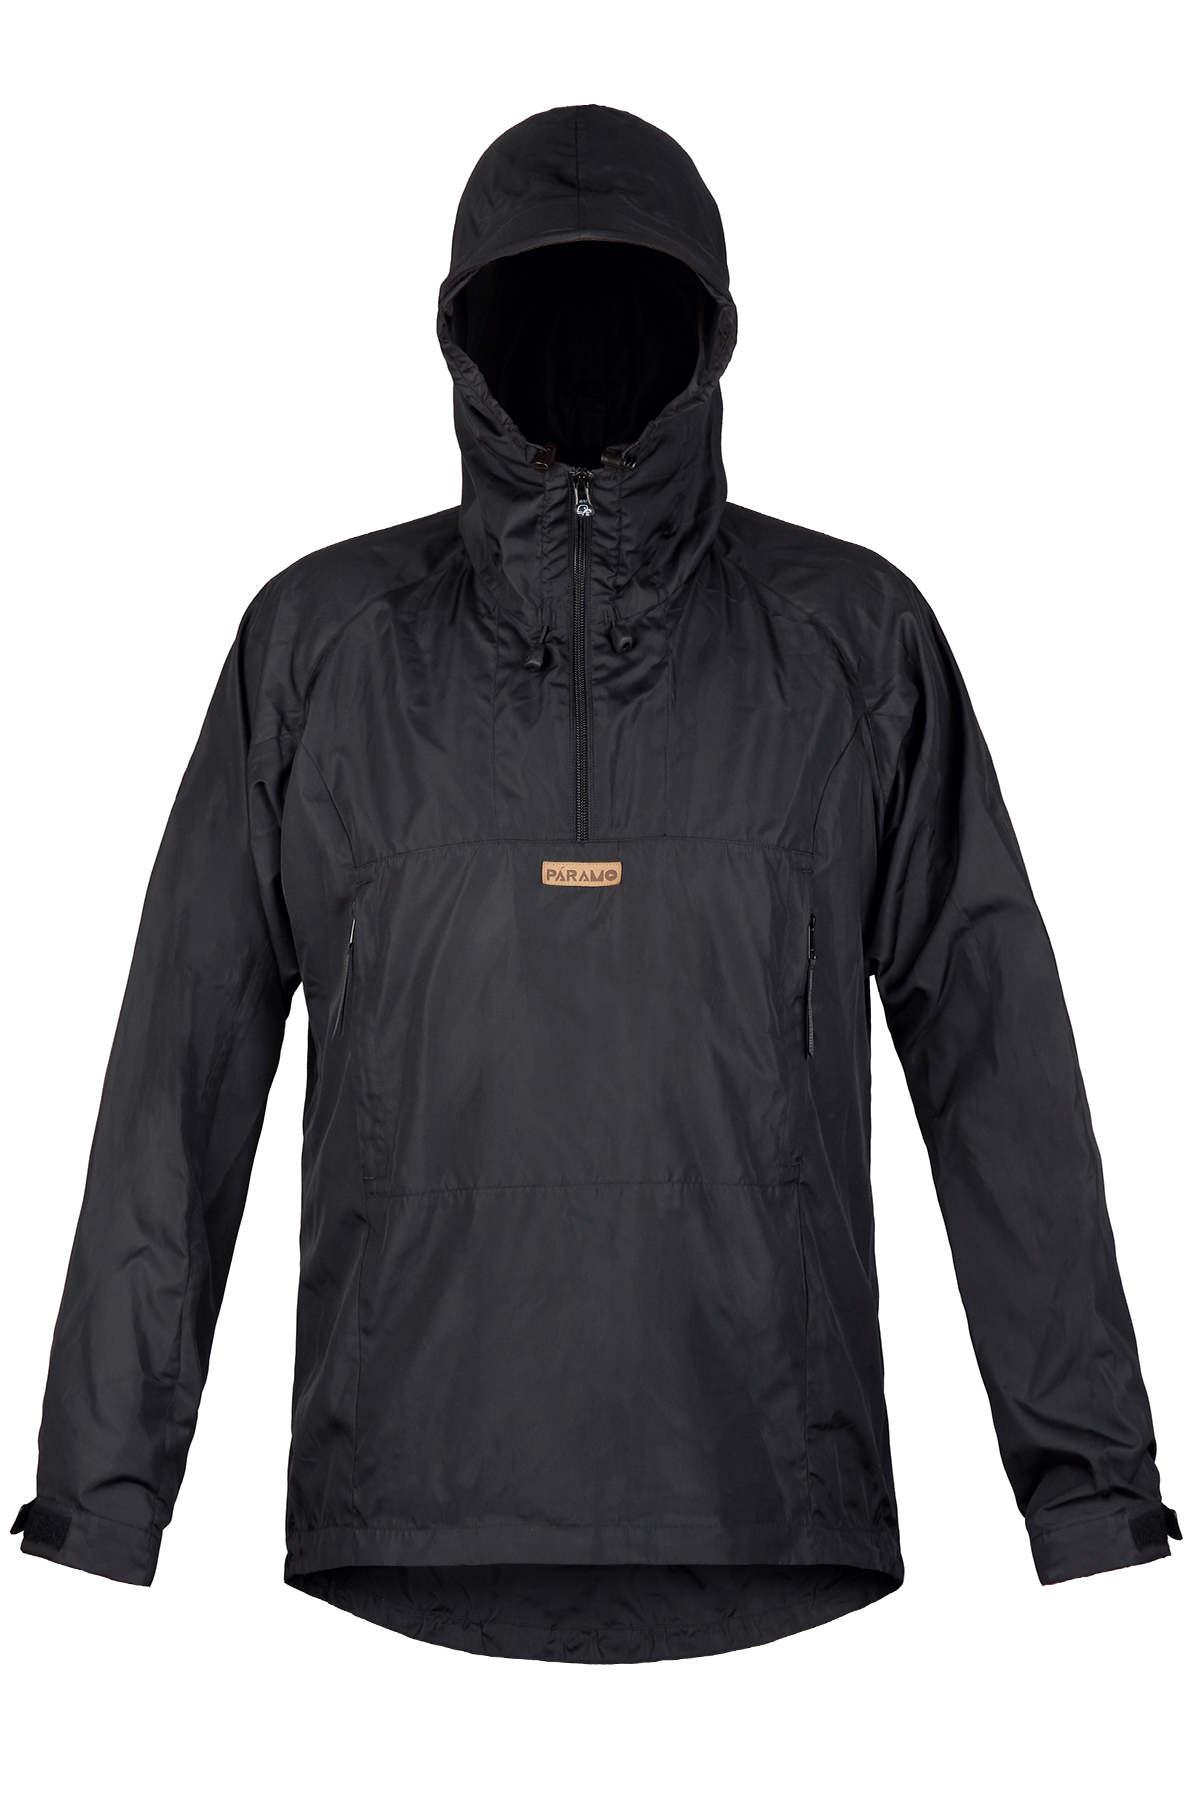 Paramo Men's Fuera Windproof Smock (Classic)